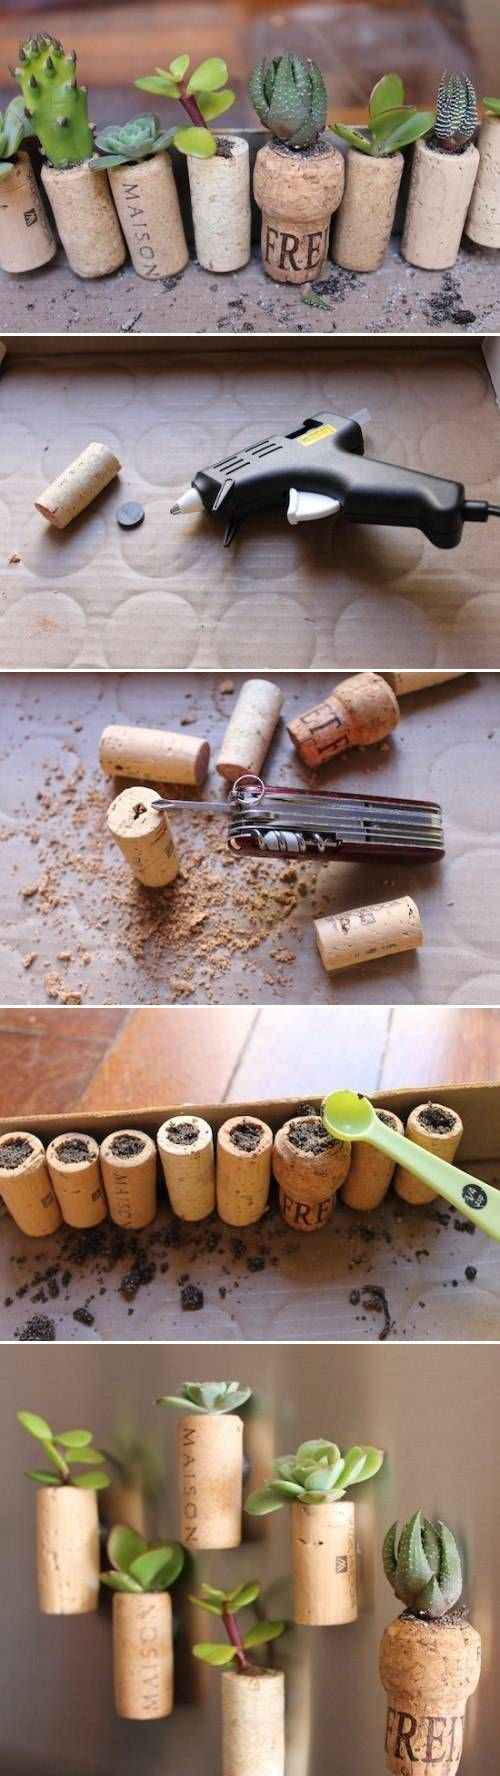 DIY Wine Cork Garden. This has got to be one of the most awesome things I have ever seen!!